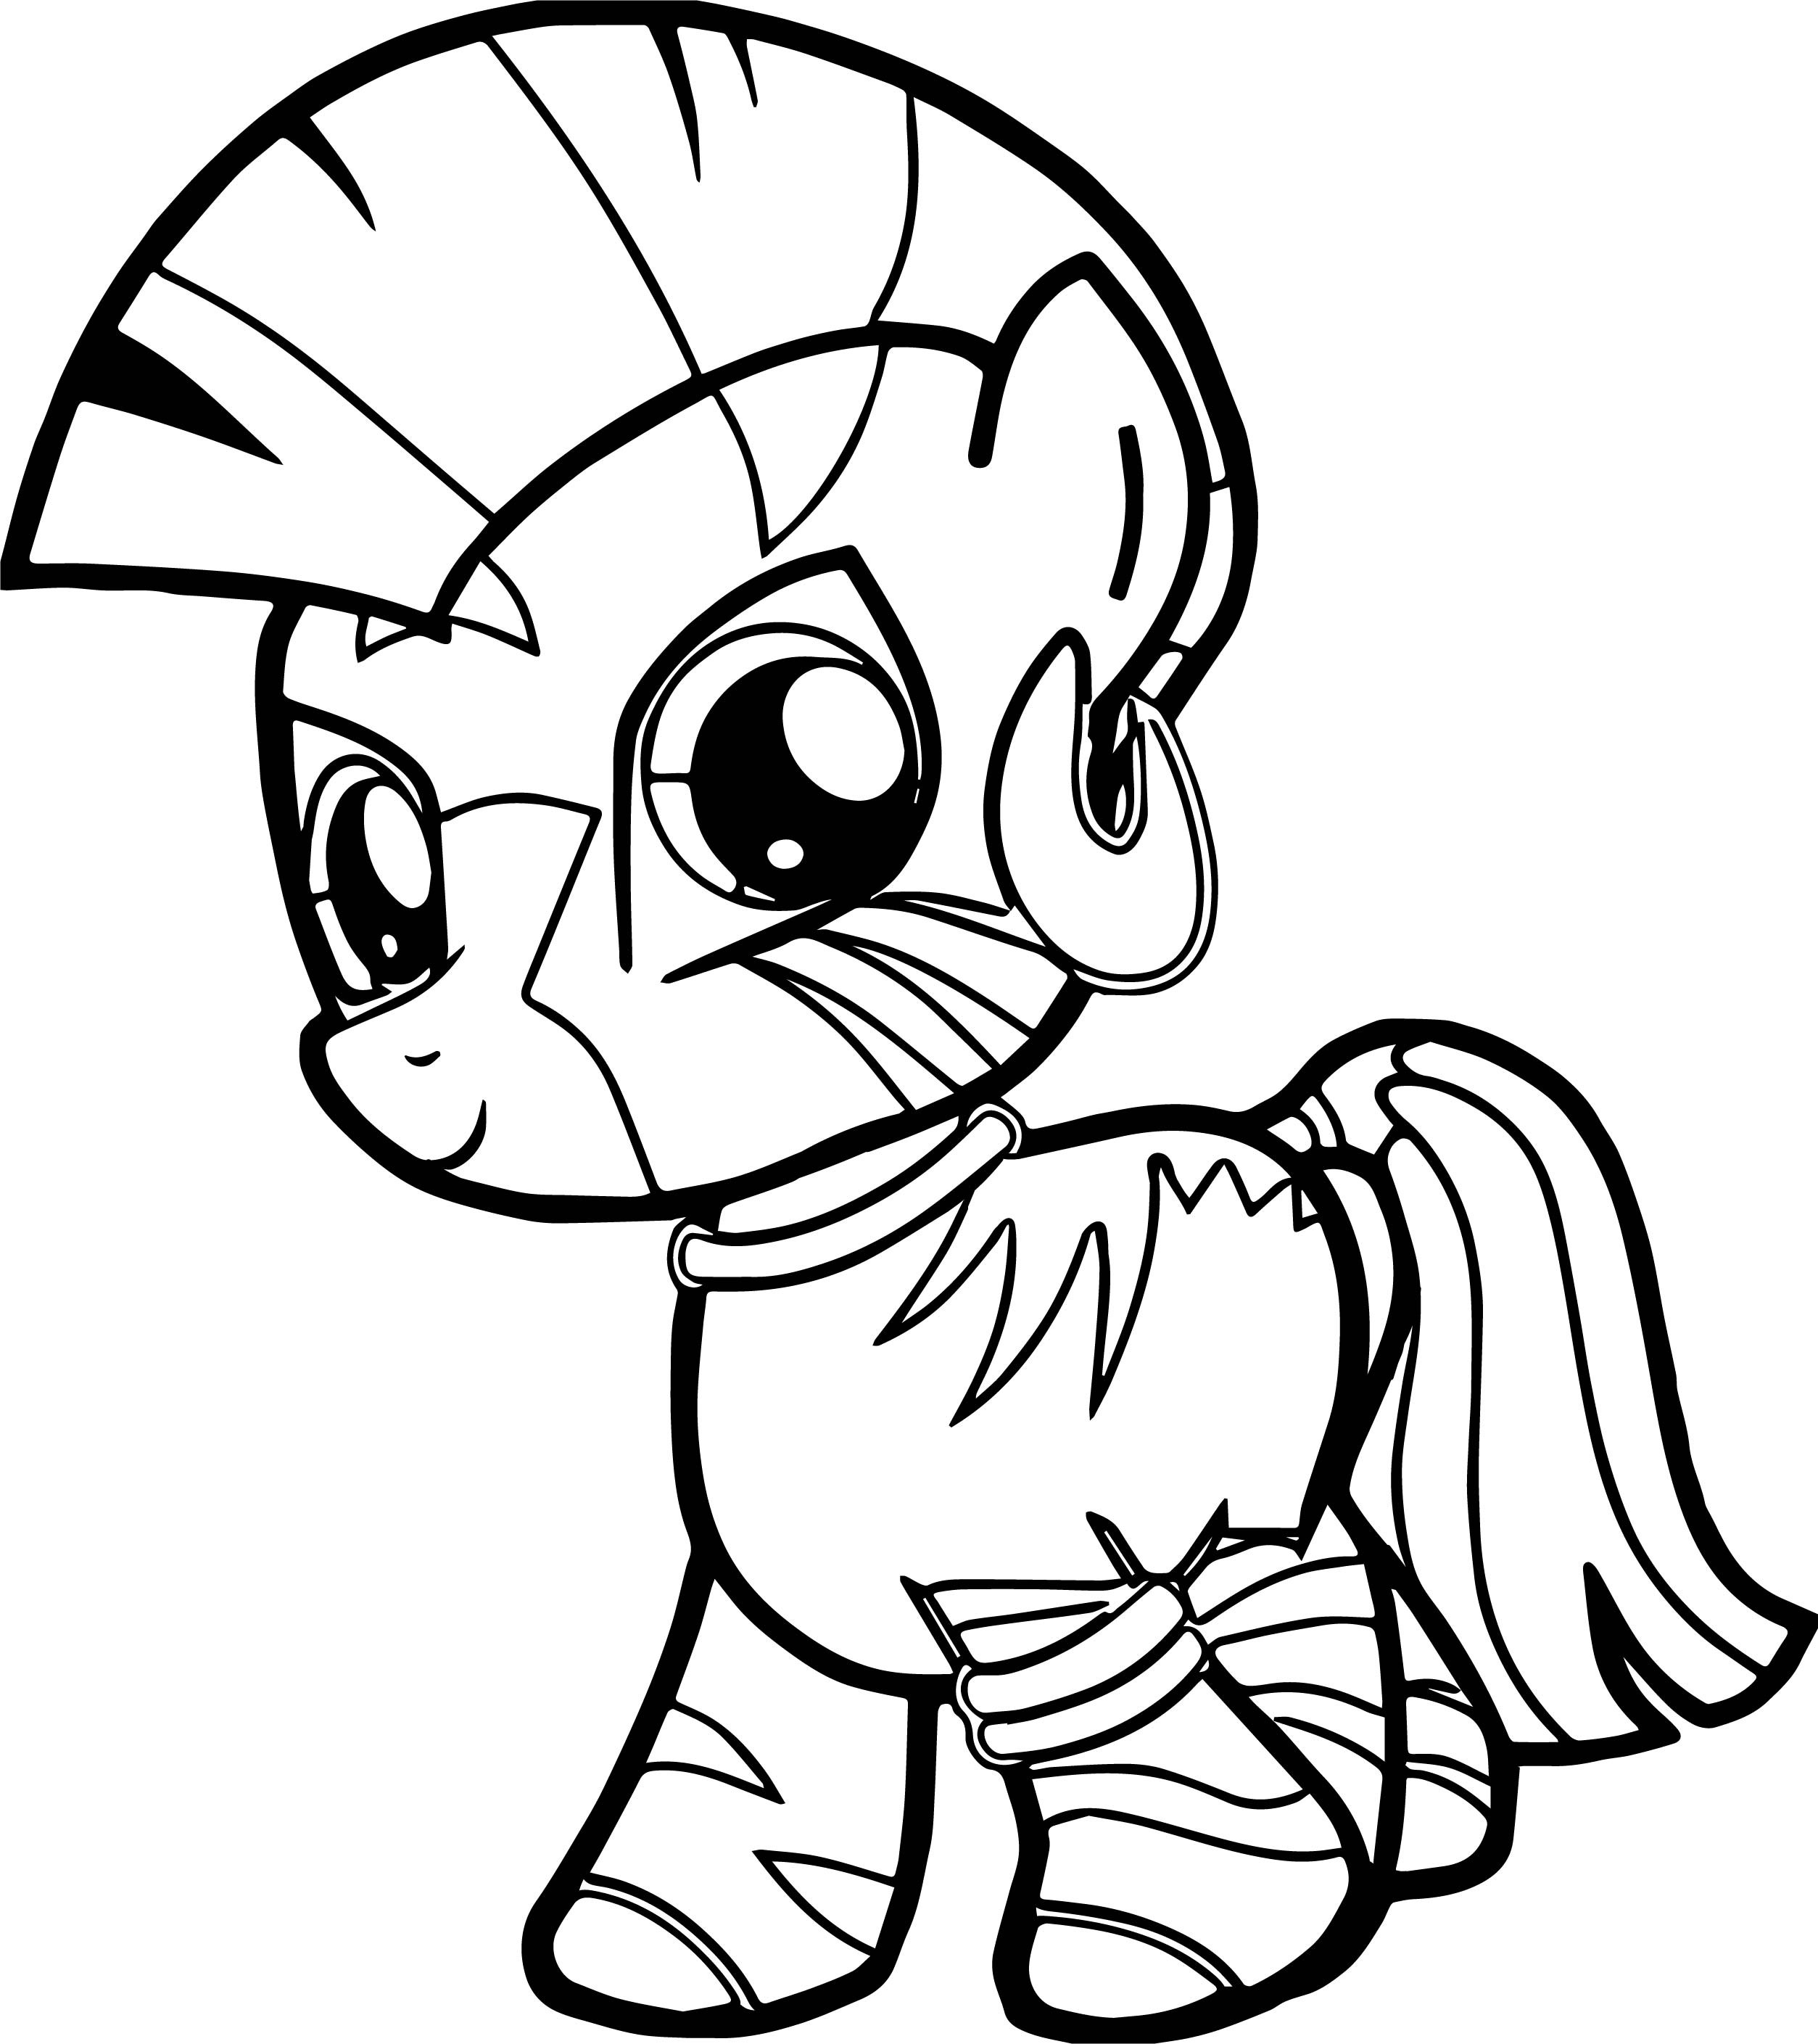 baby giraffe pictures to color cute baby giraffe coloring page for the two year old color pictures giraffe baby to